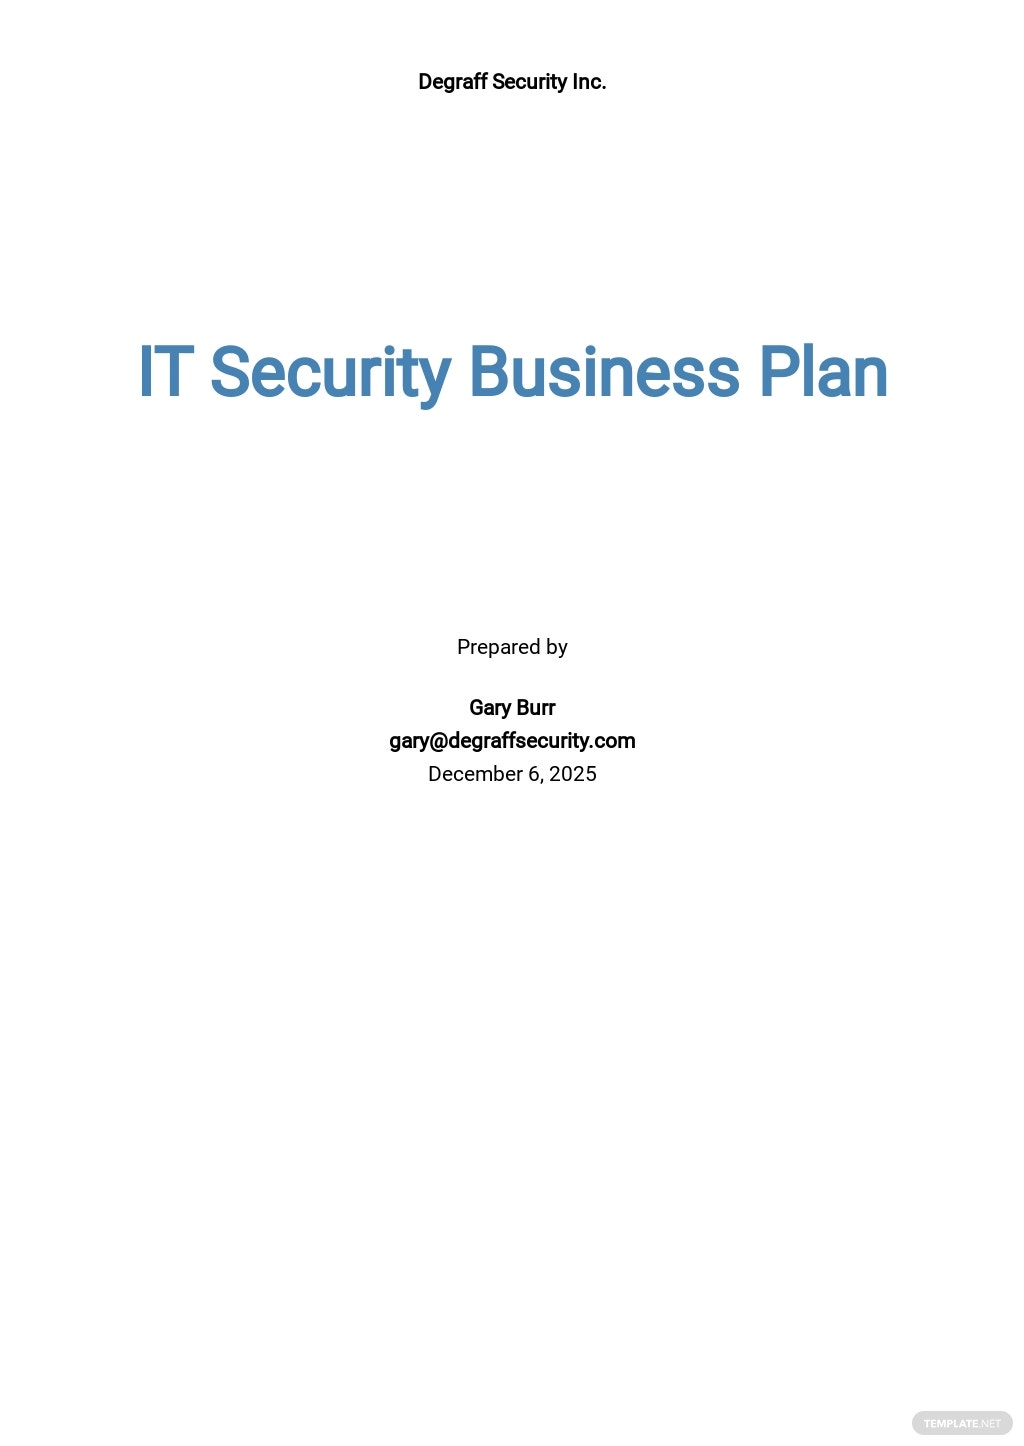 IT Security Business Plan Template